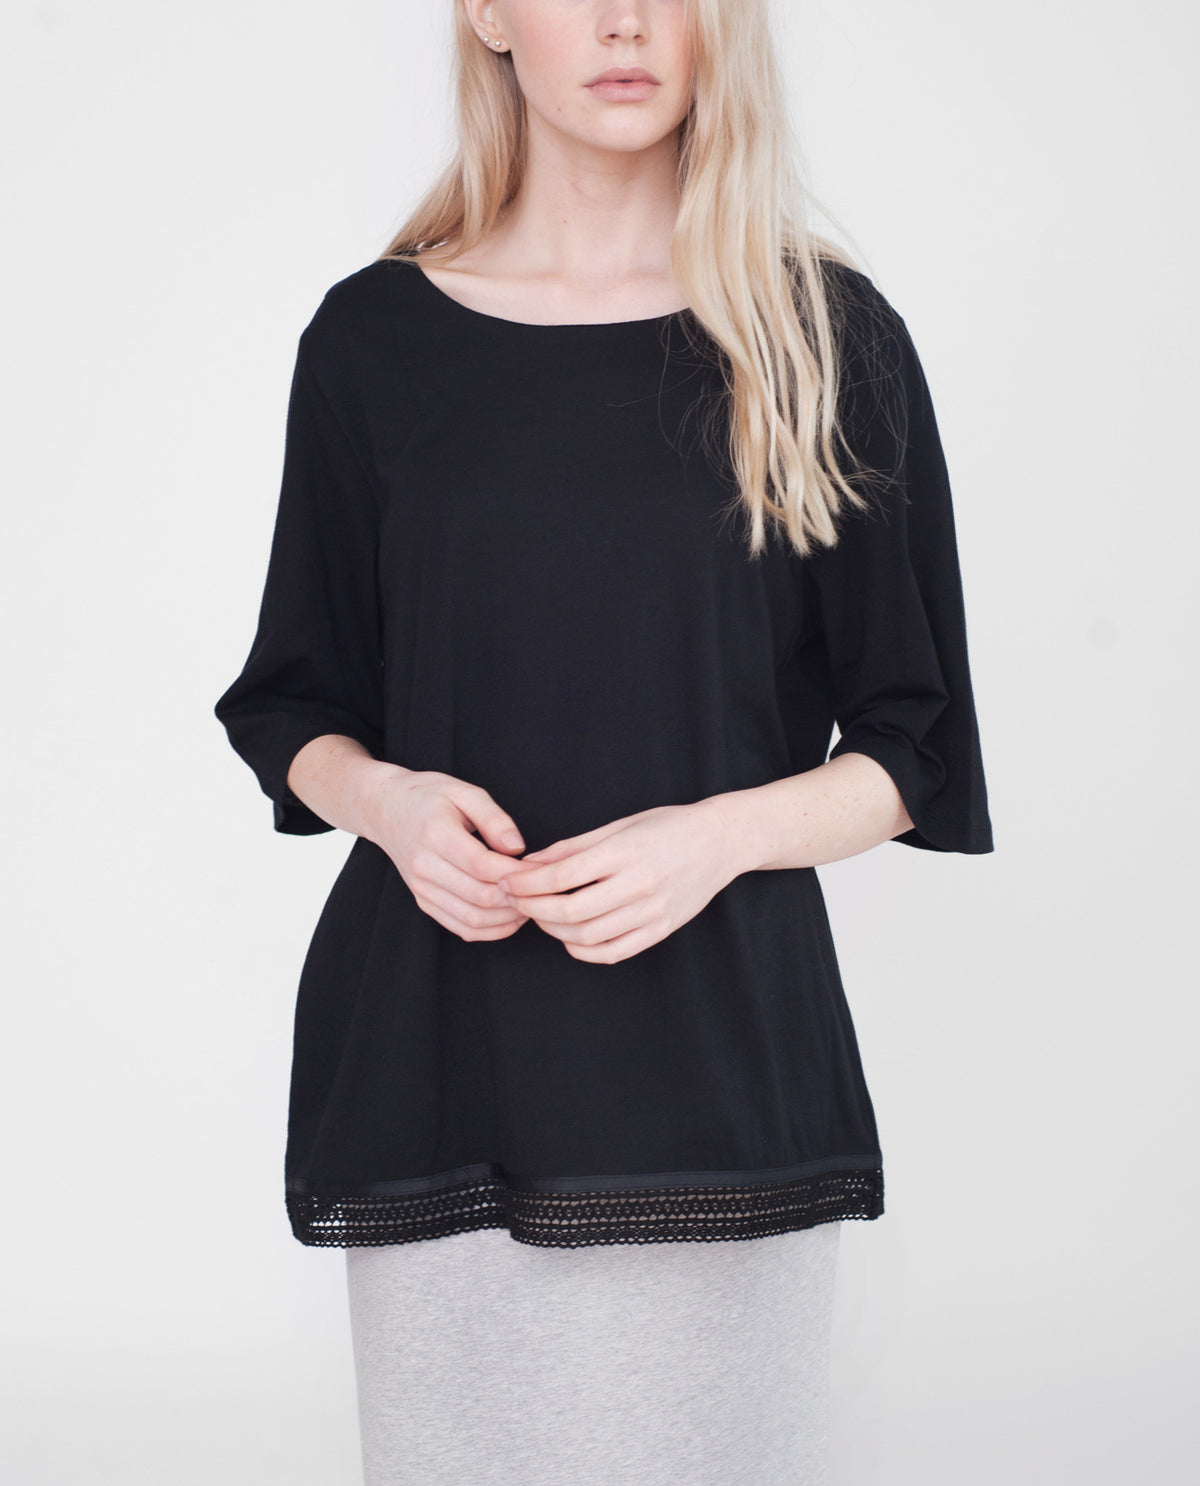 BRIELLE Organic Cotton Top In Black